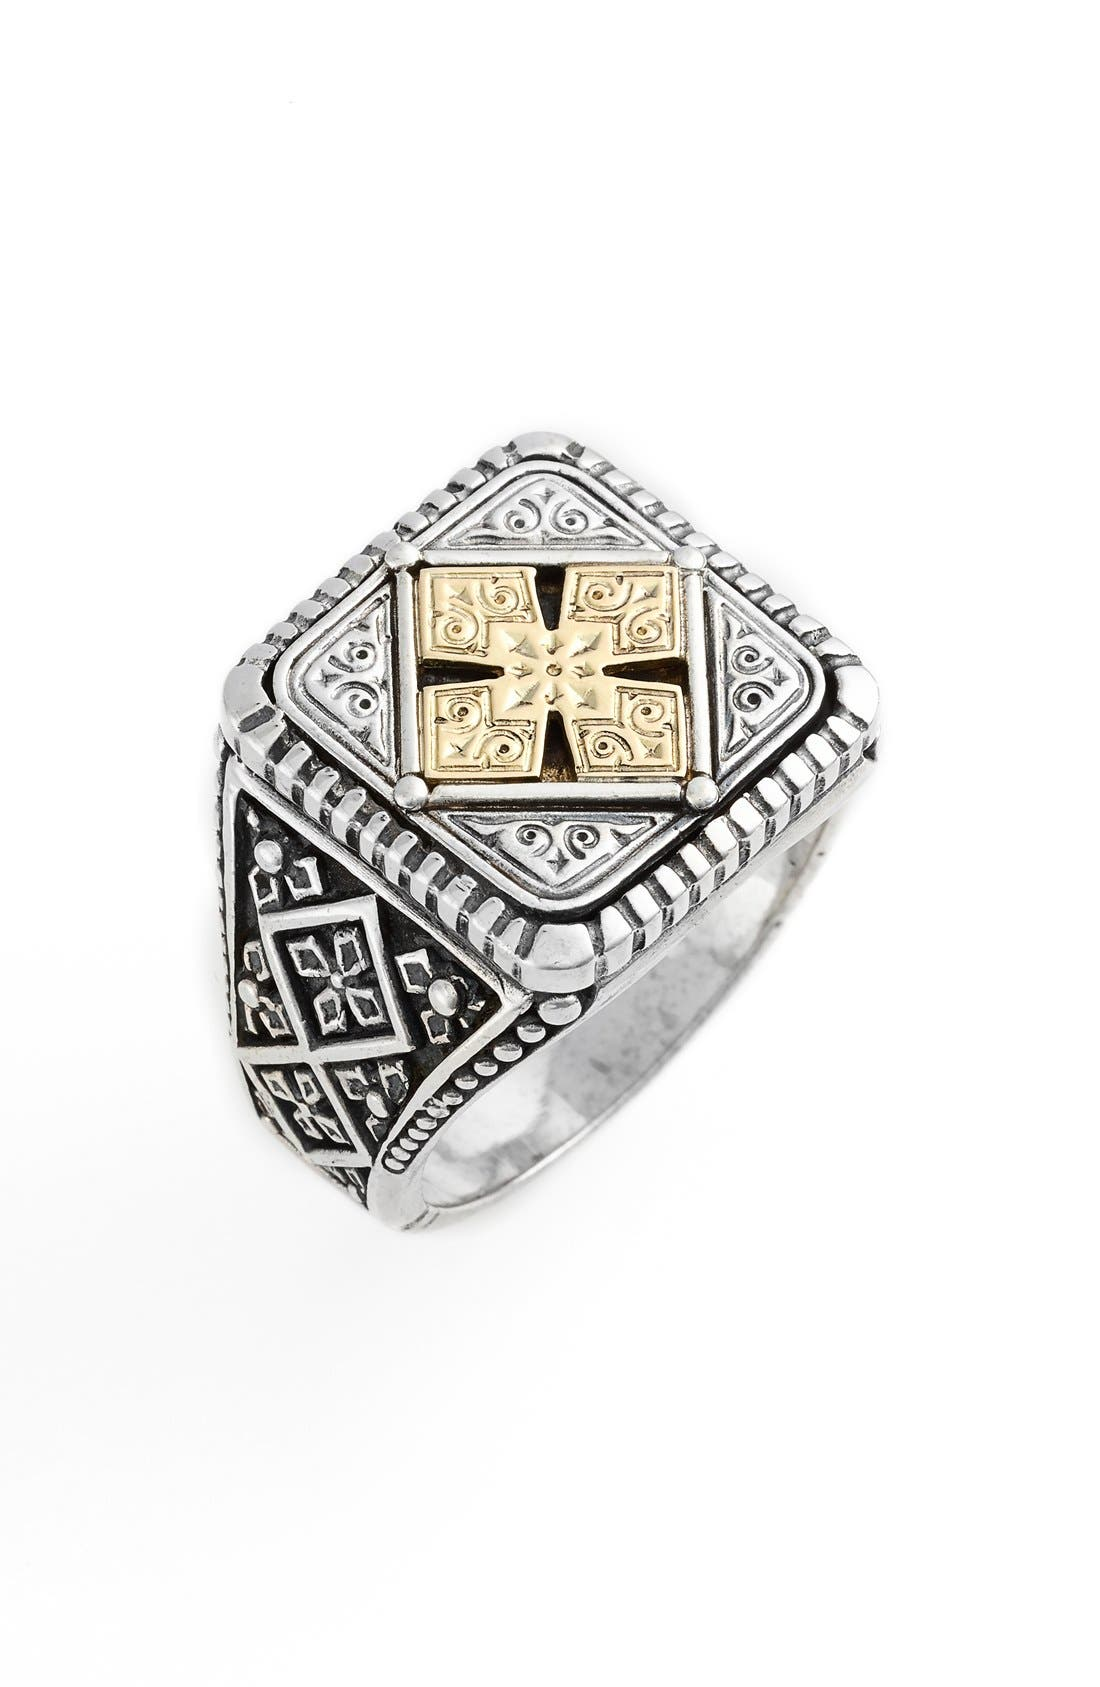 Silver & Gold Classics Square Ring,                             Main thumbnail 1, color,                             SILVER